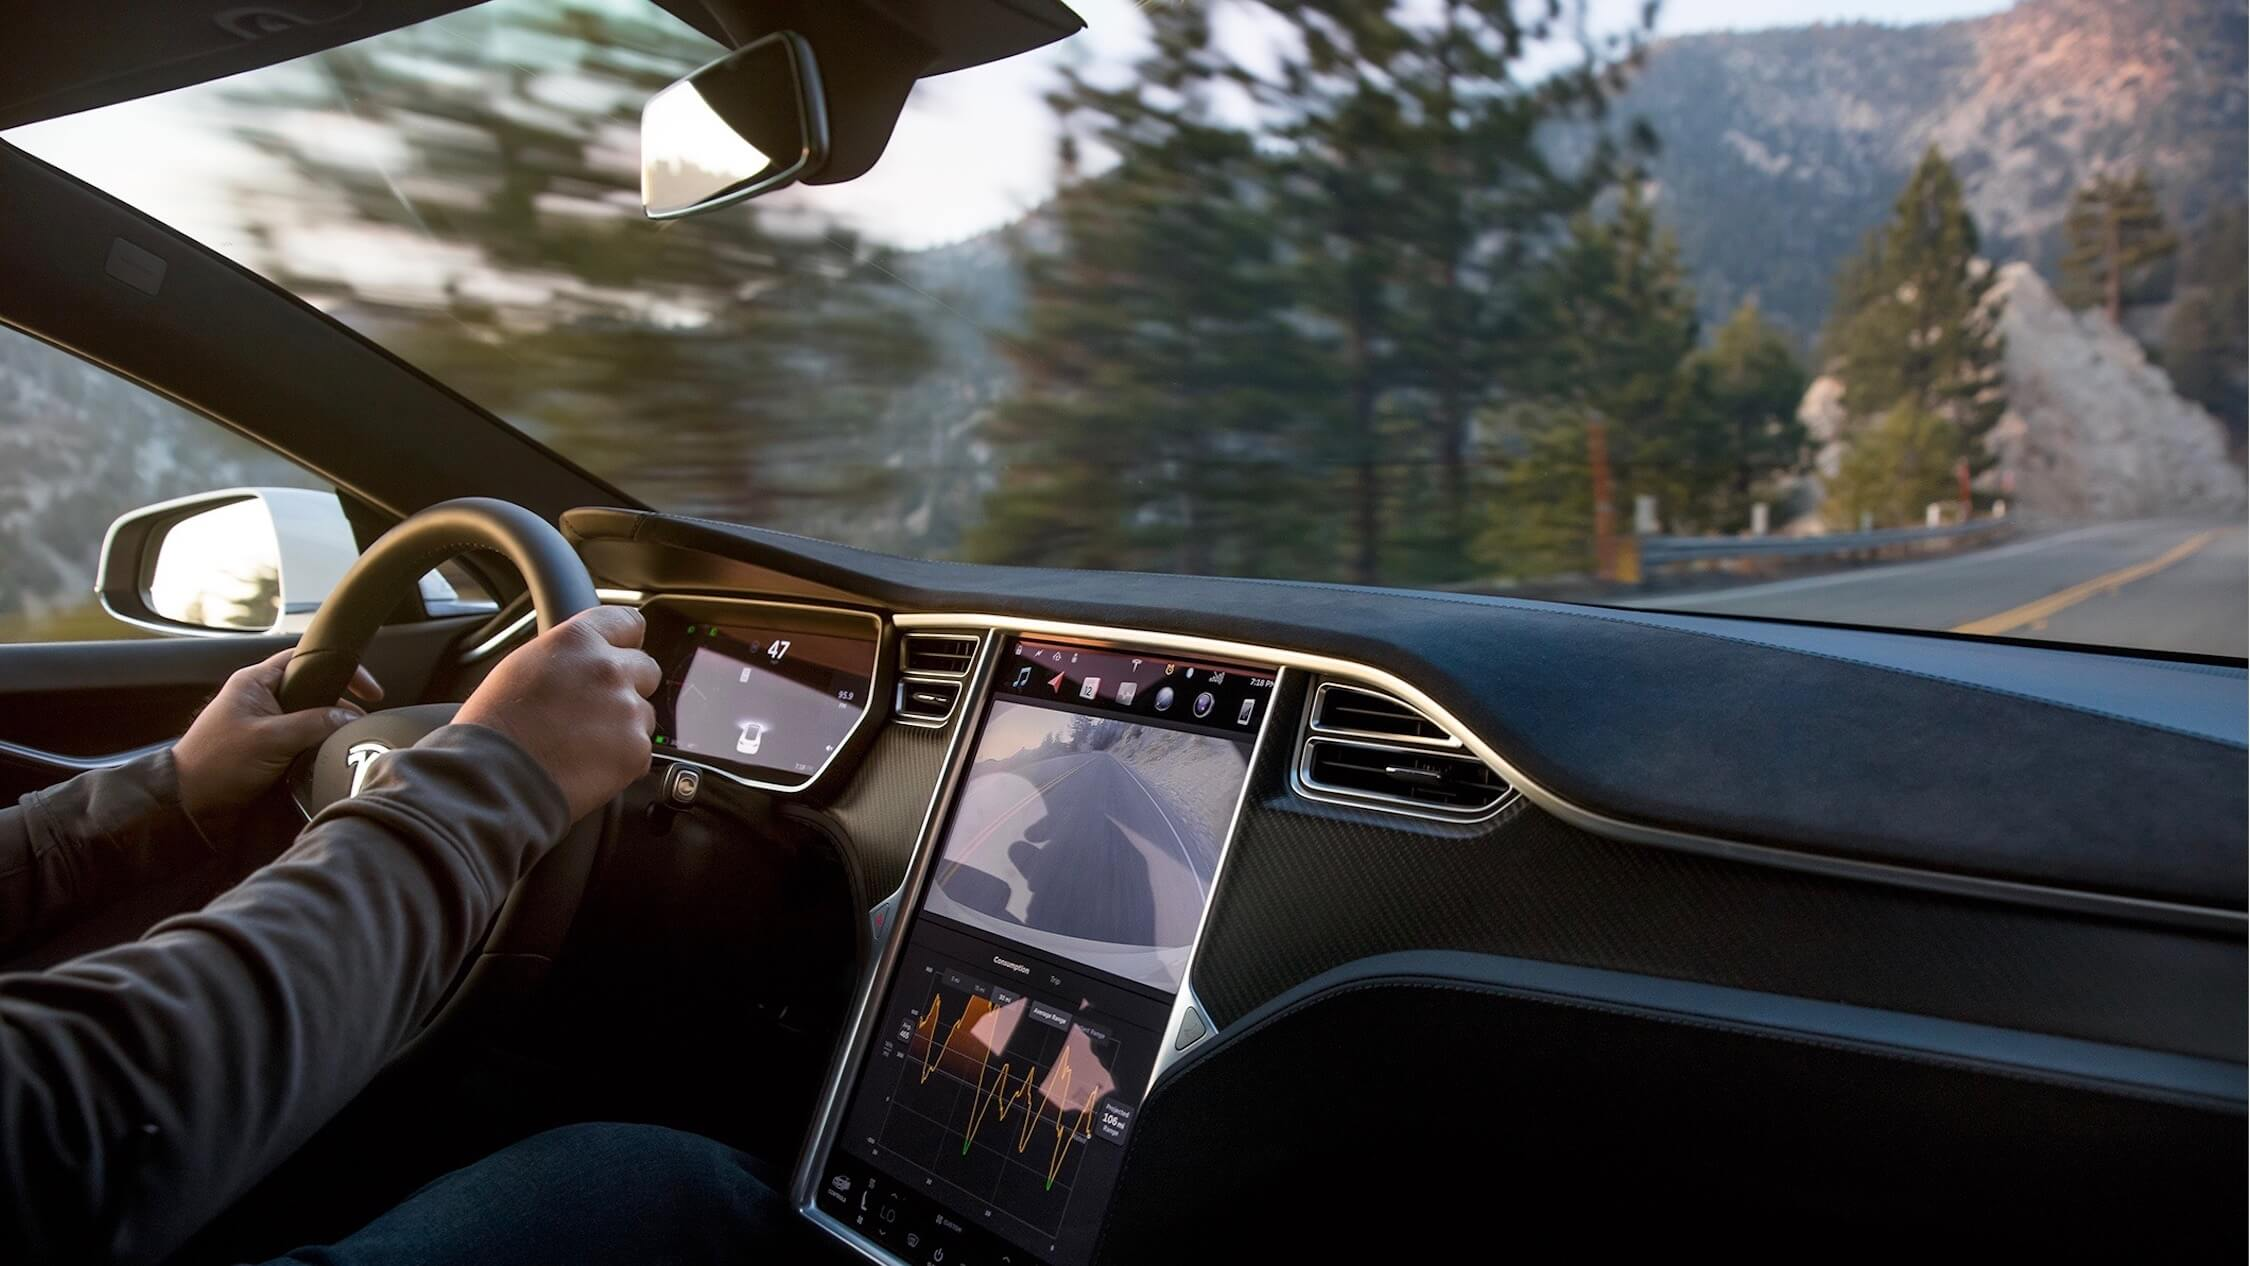 Tesla Model S interieur